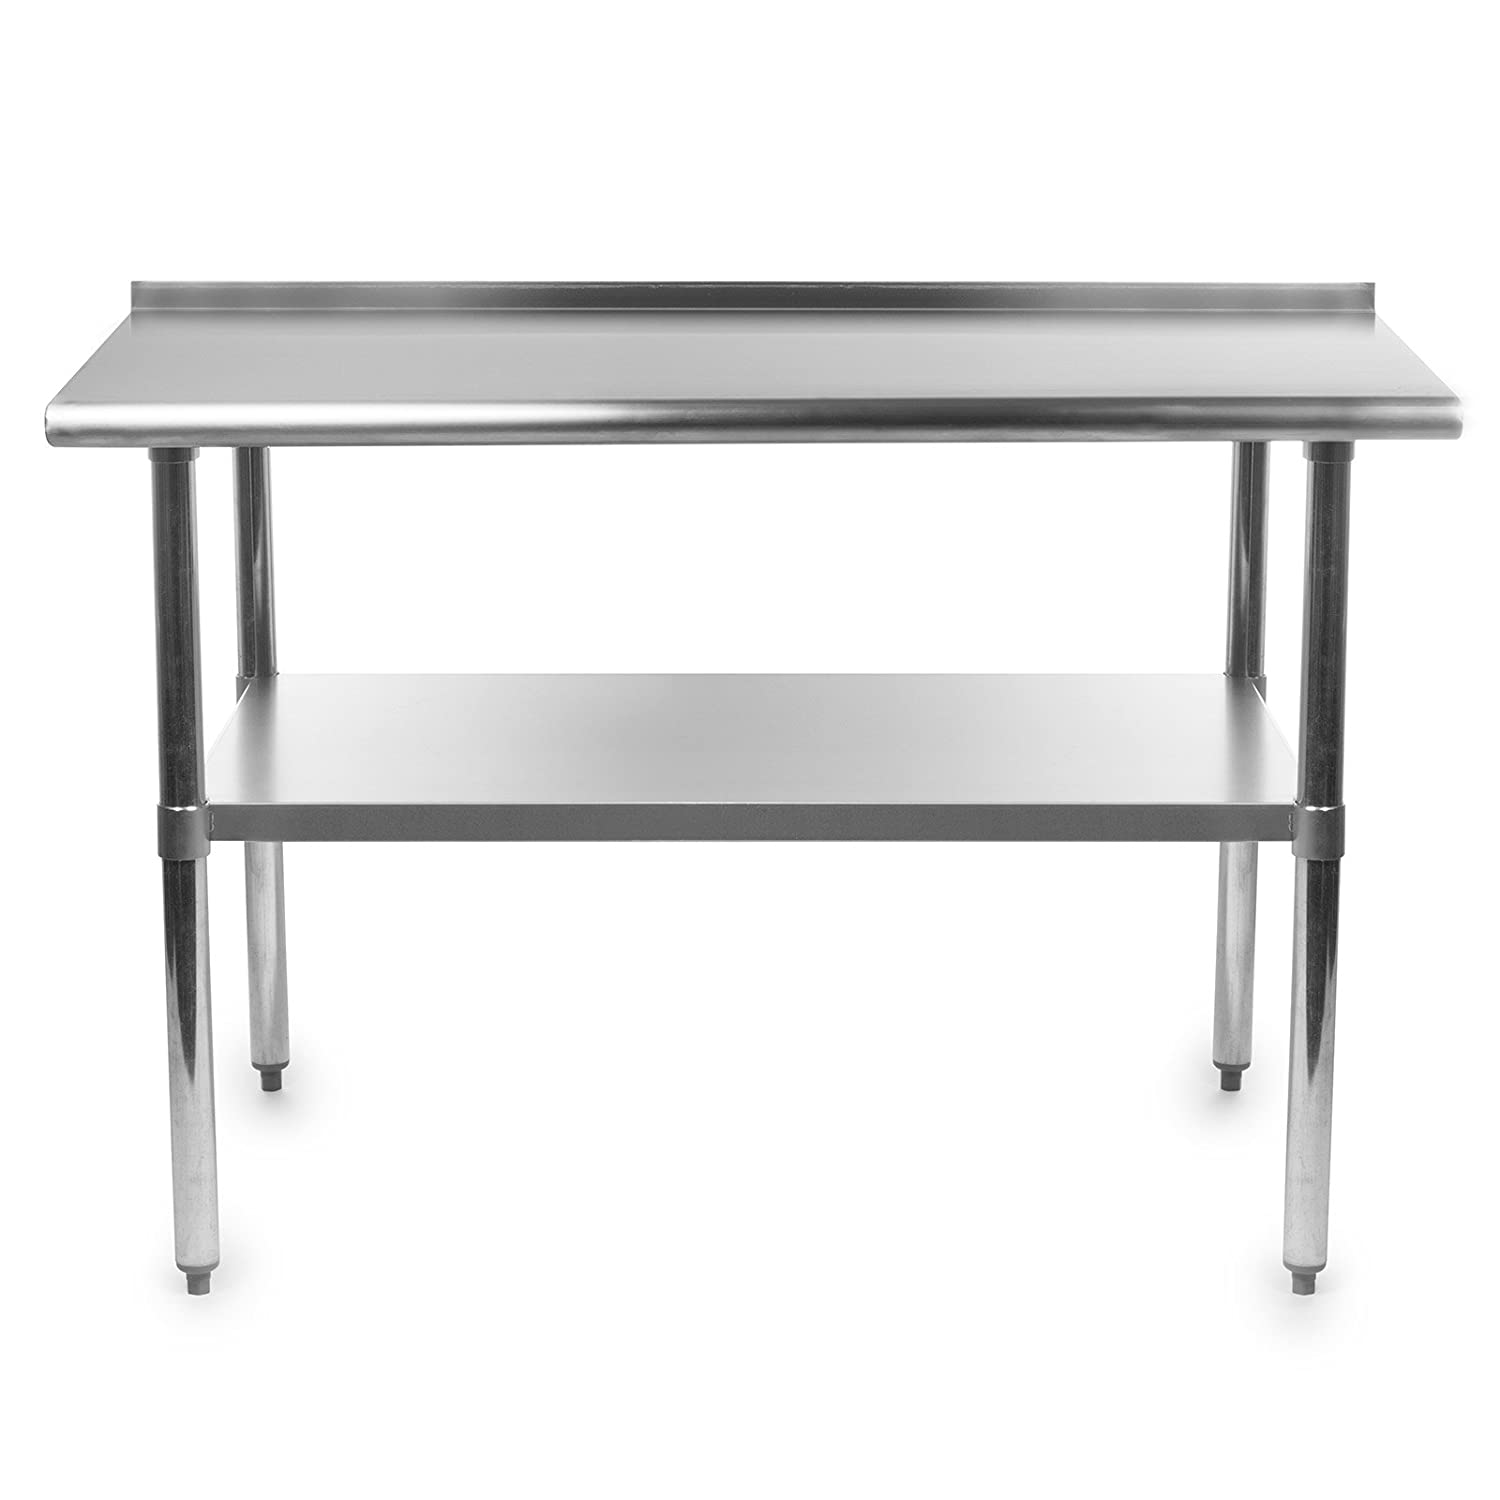 Amazon.com: Gridmann Stainless Steel Commercial Kitchen Prep ...